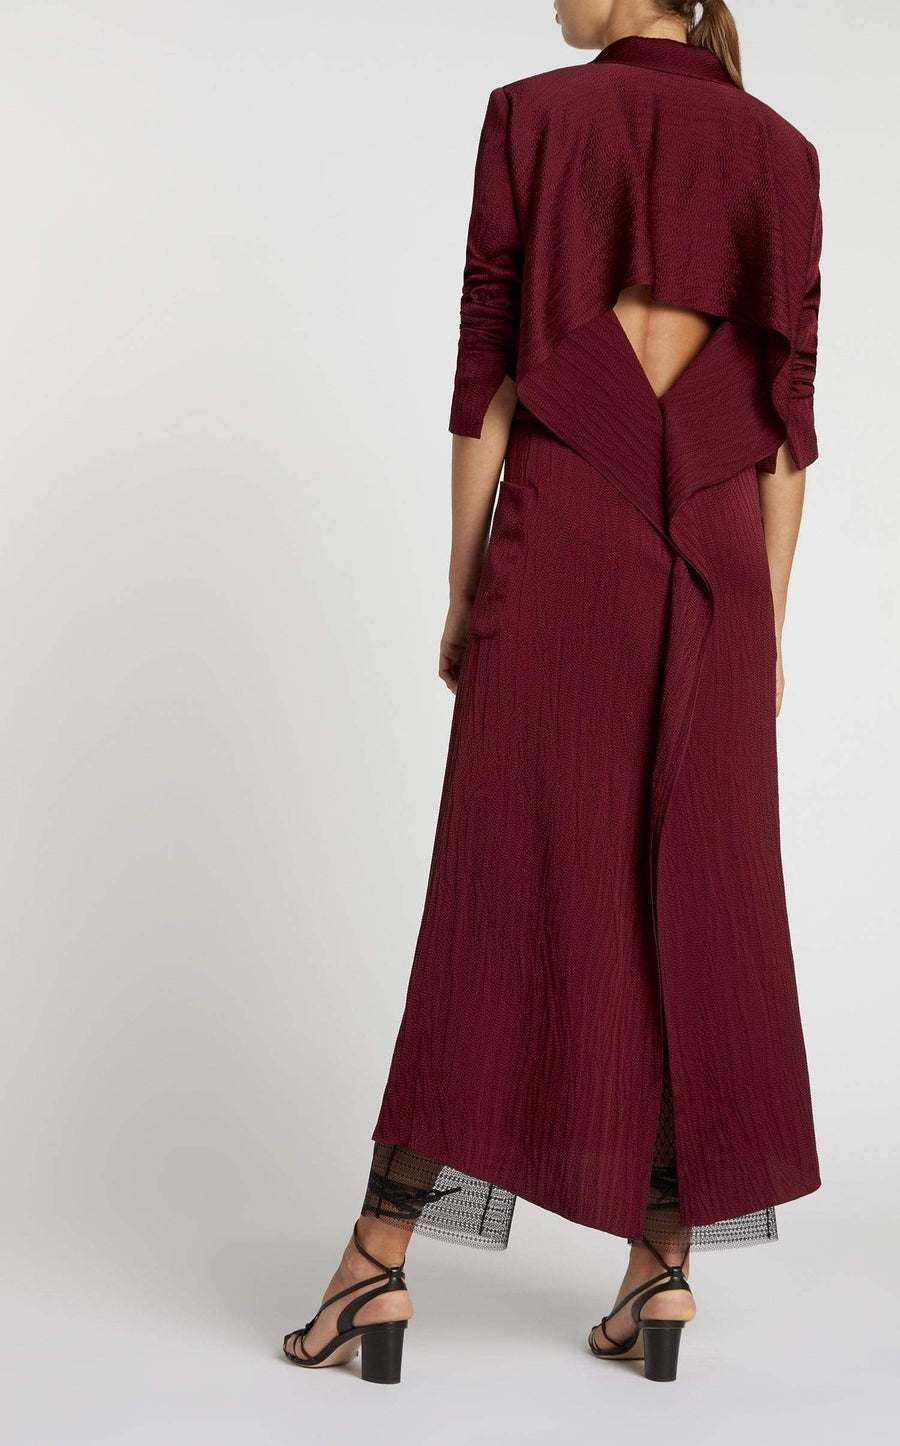 Heathcoat Coat In Cabernet from Roland Mouret